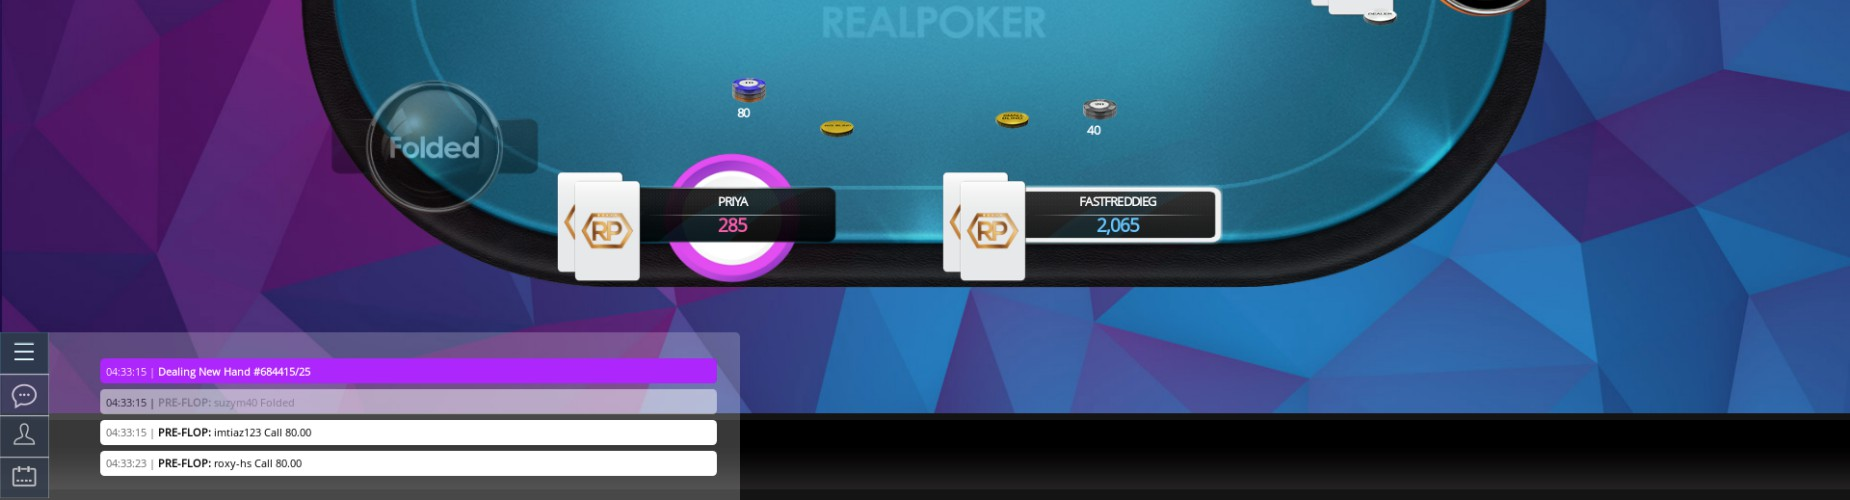 How To Play BTC Poker Online